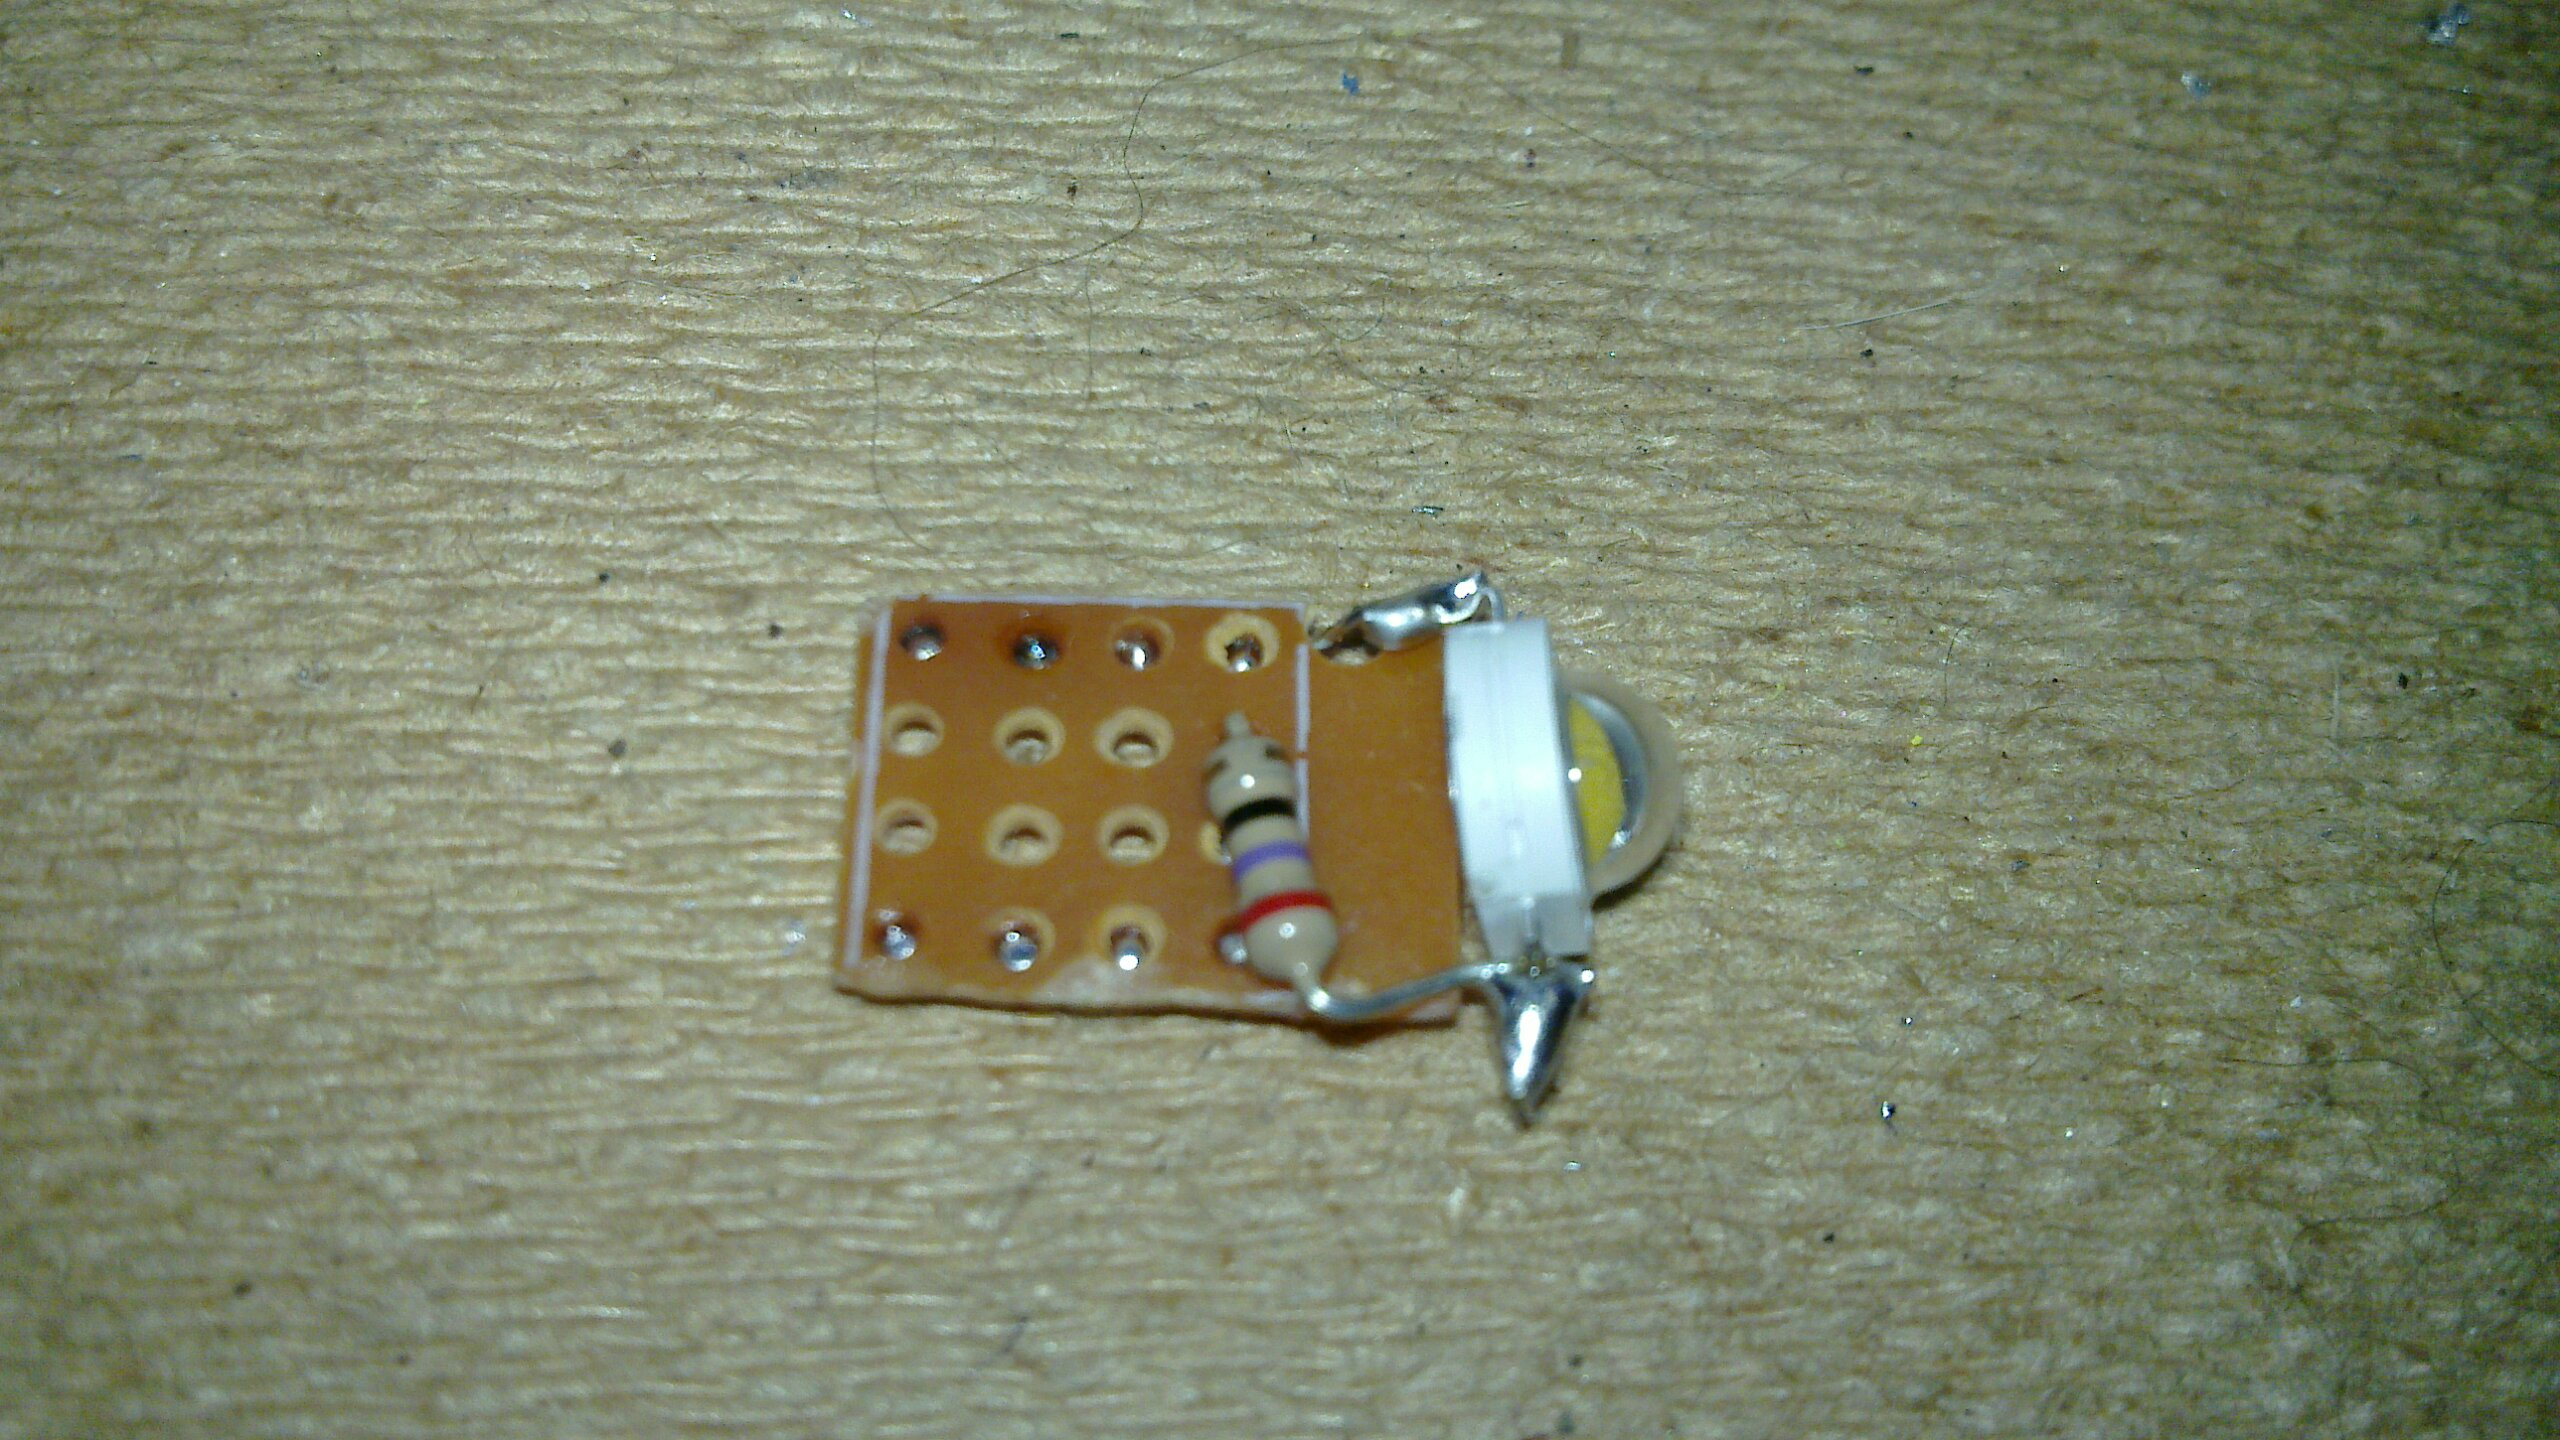 TinyUSB 1W led - the other side